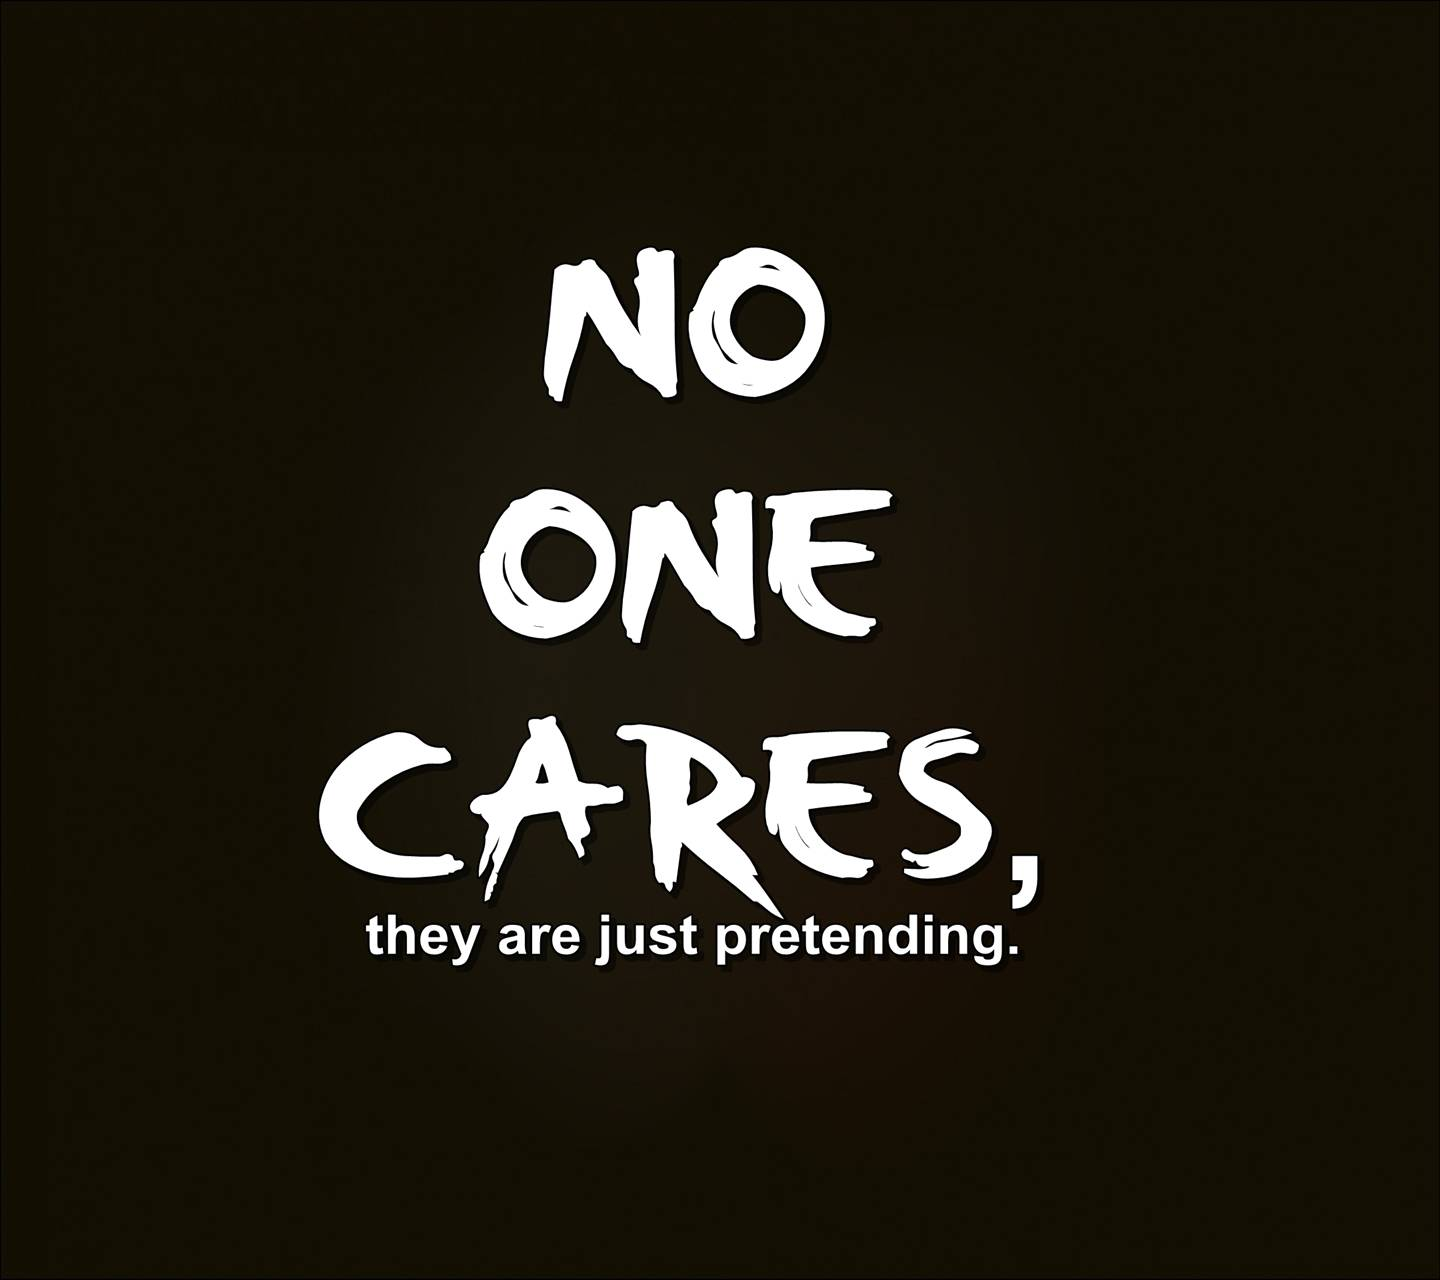 why no one cares